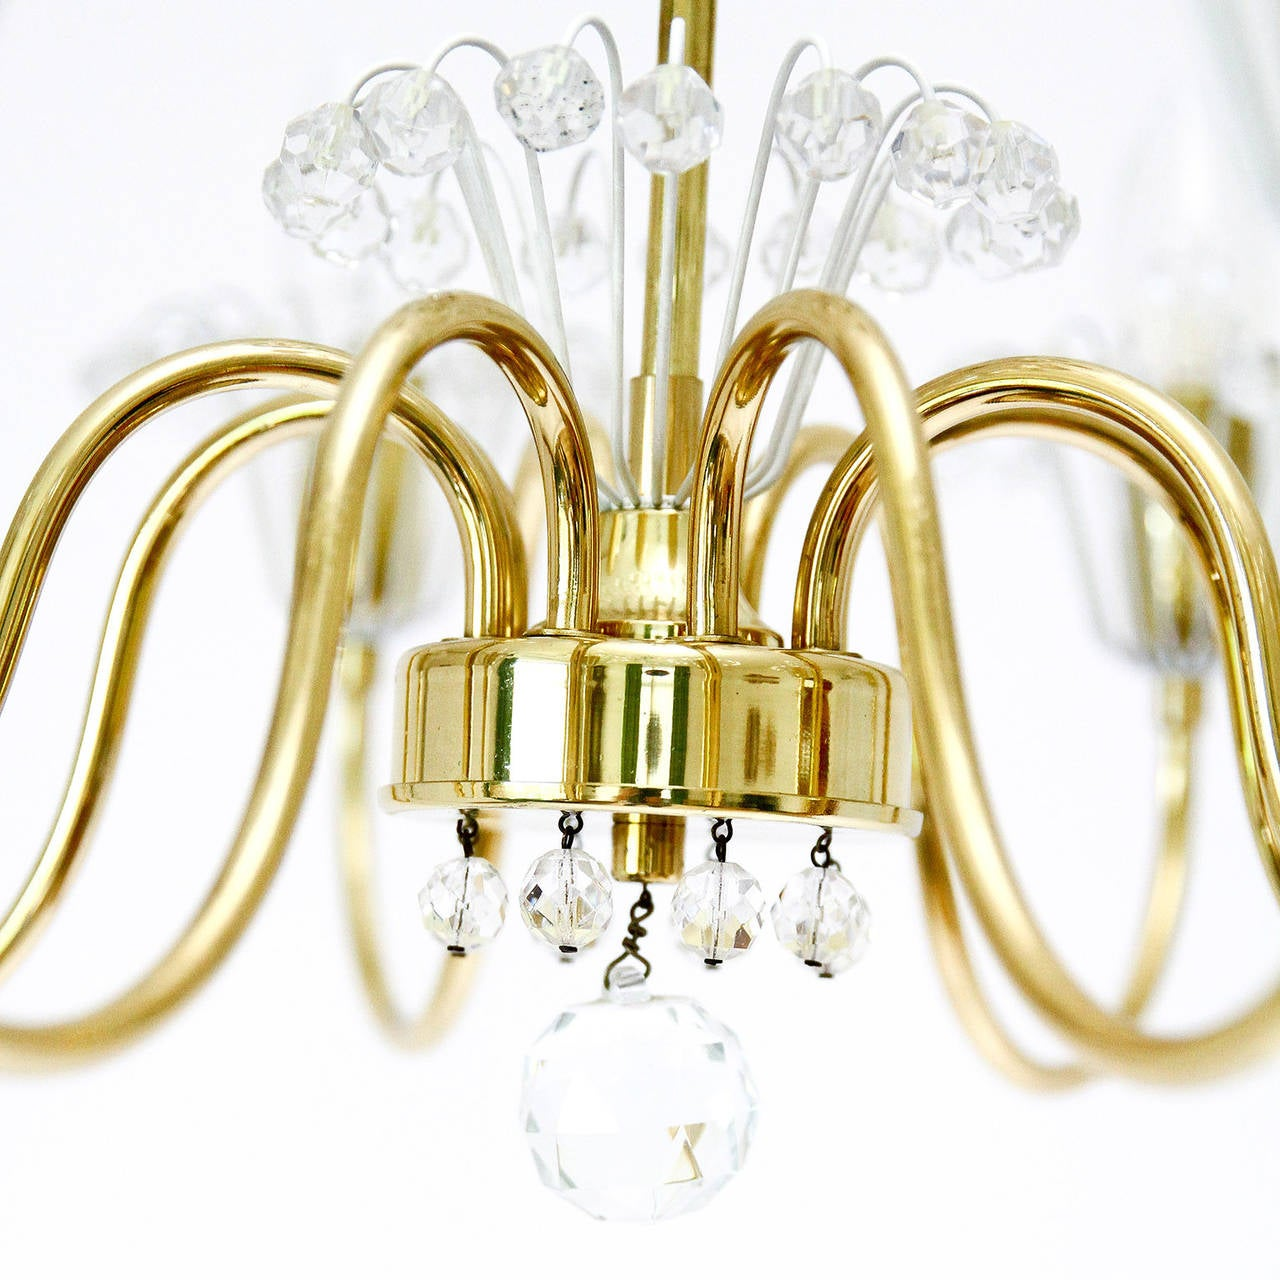 Lacquered Emil Stejnar Chandelier for Rupert Nikoll, Brass and Glass, 1950s For Sale